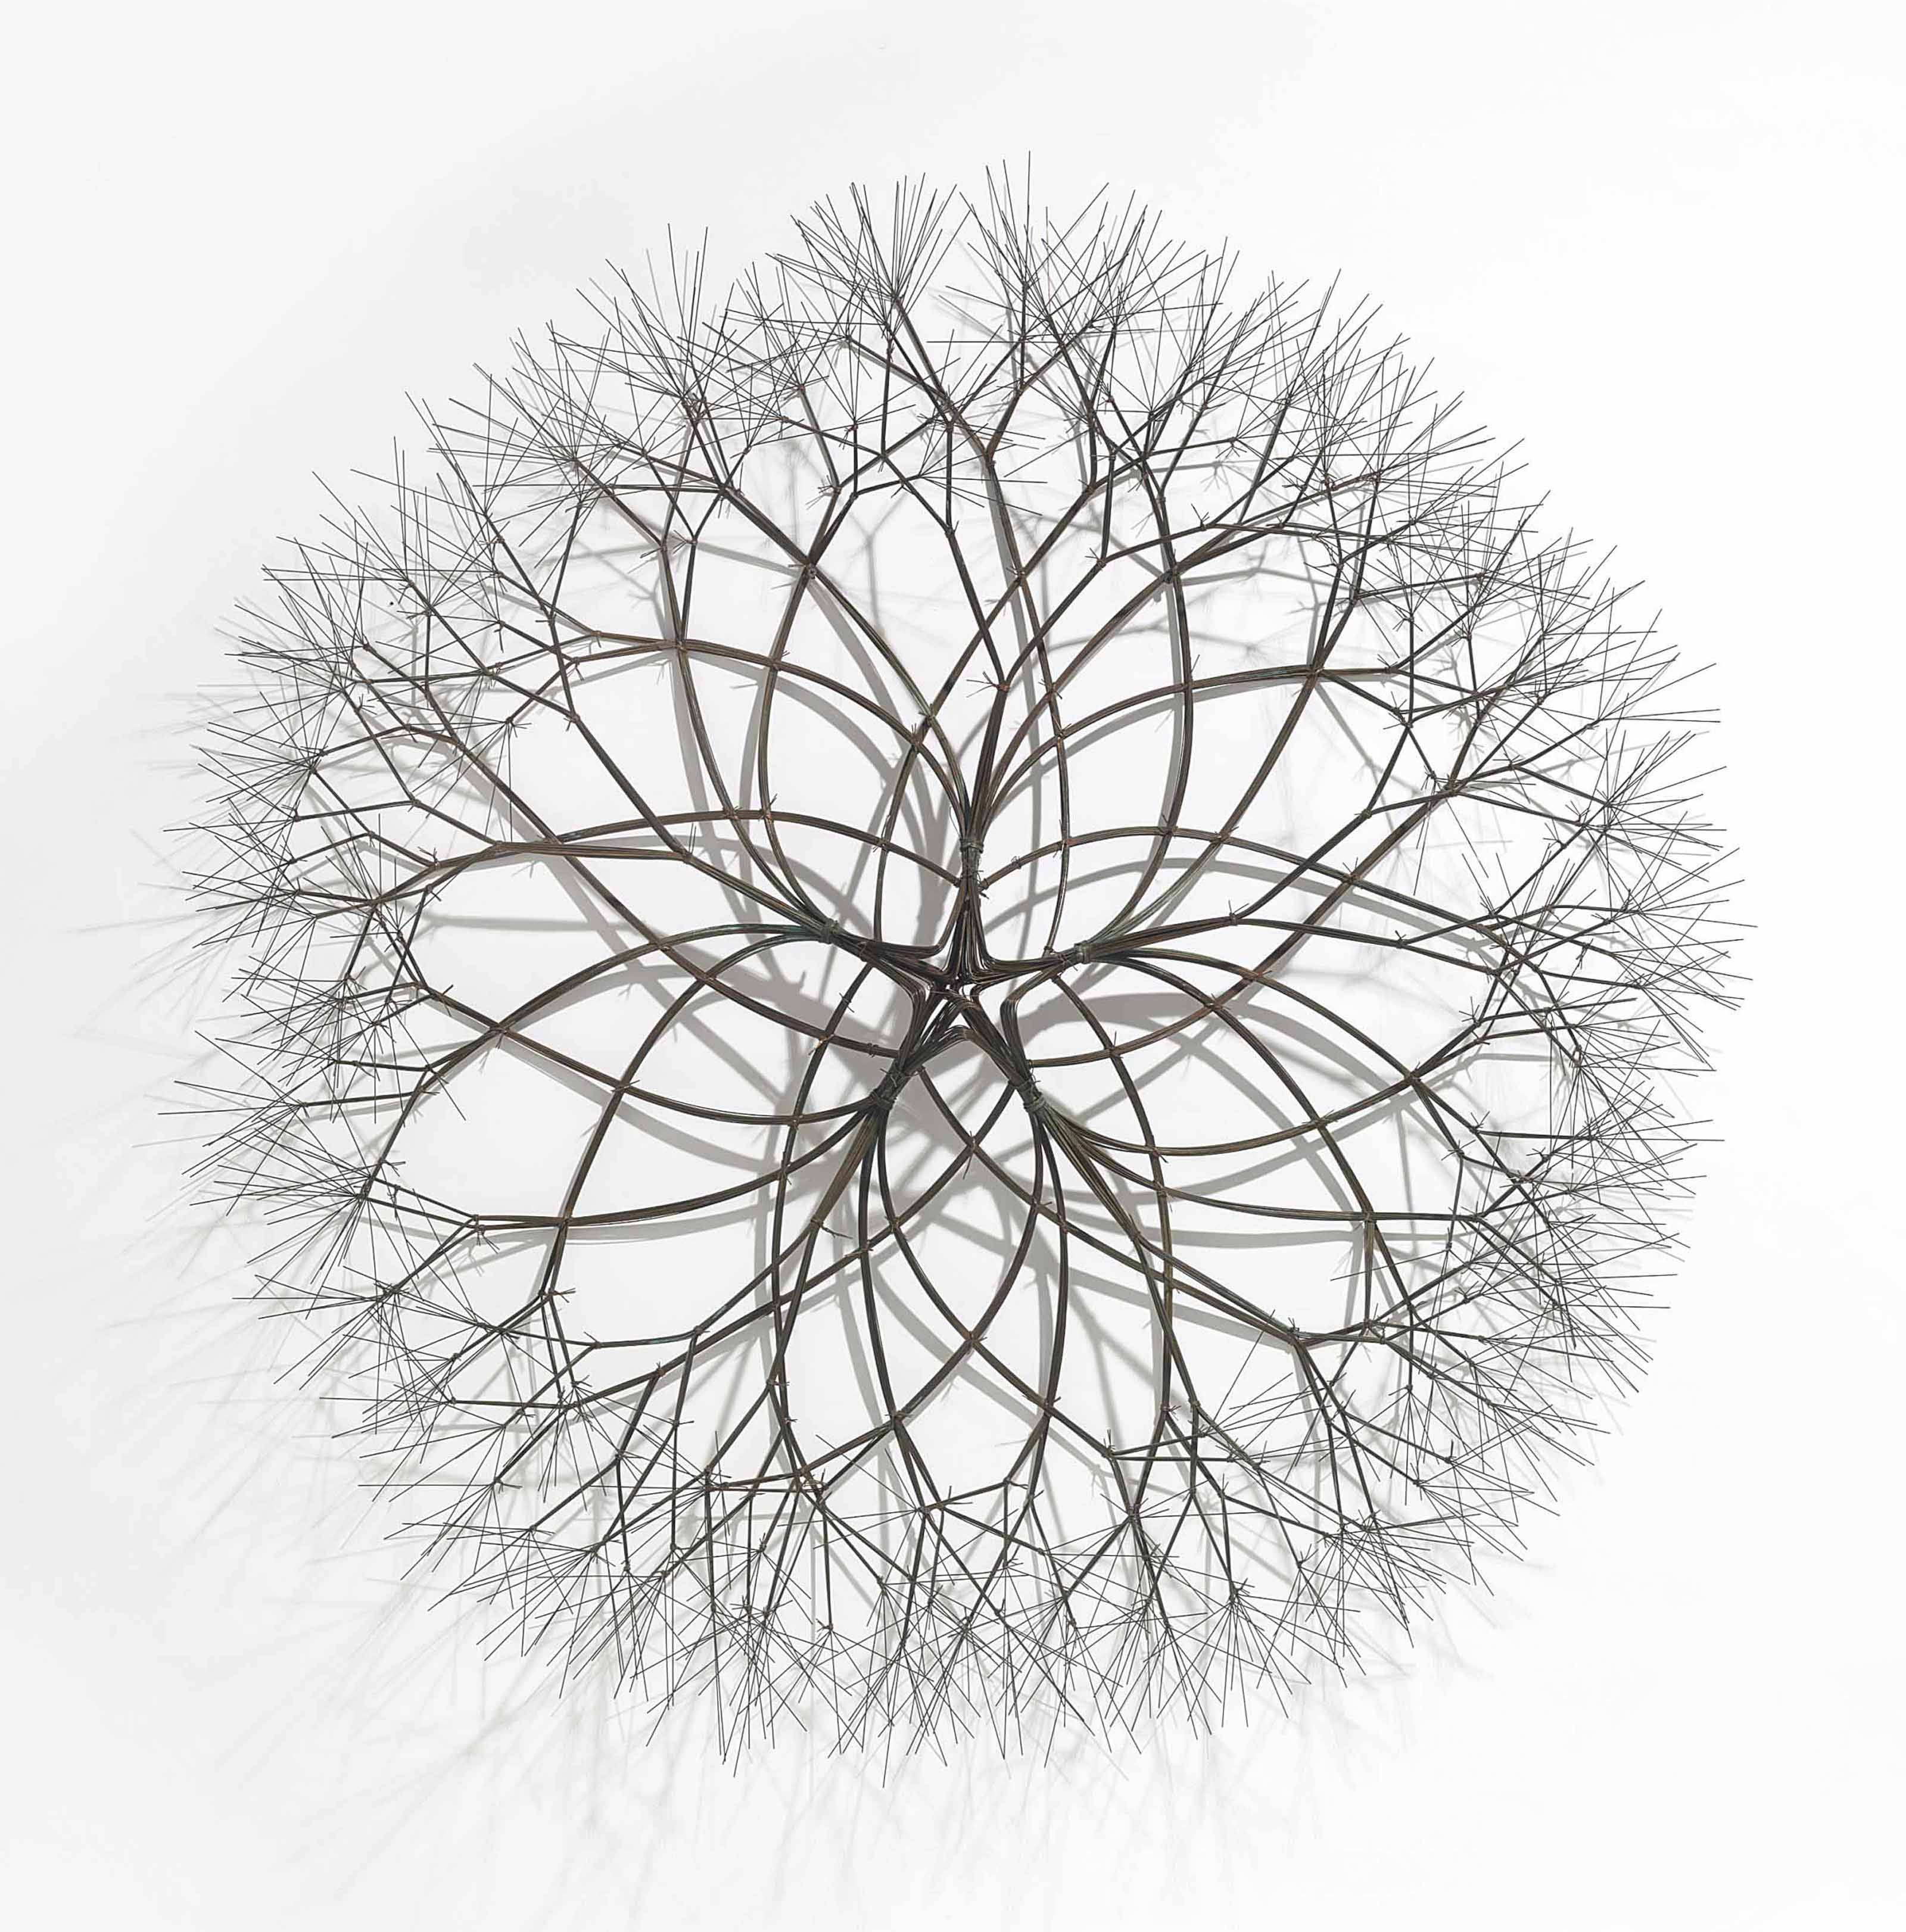 Untitled (S.118, Wall-Mounted, Tied Wire, Open Center, Five-Branched, Form based on Nature)